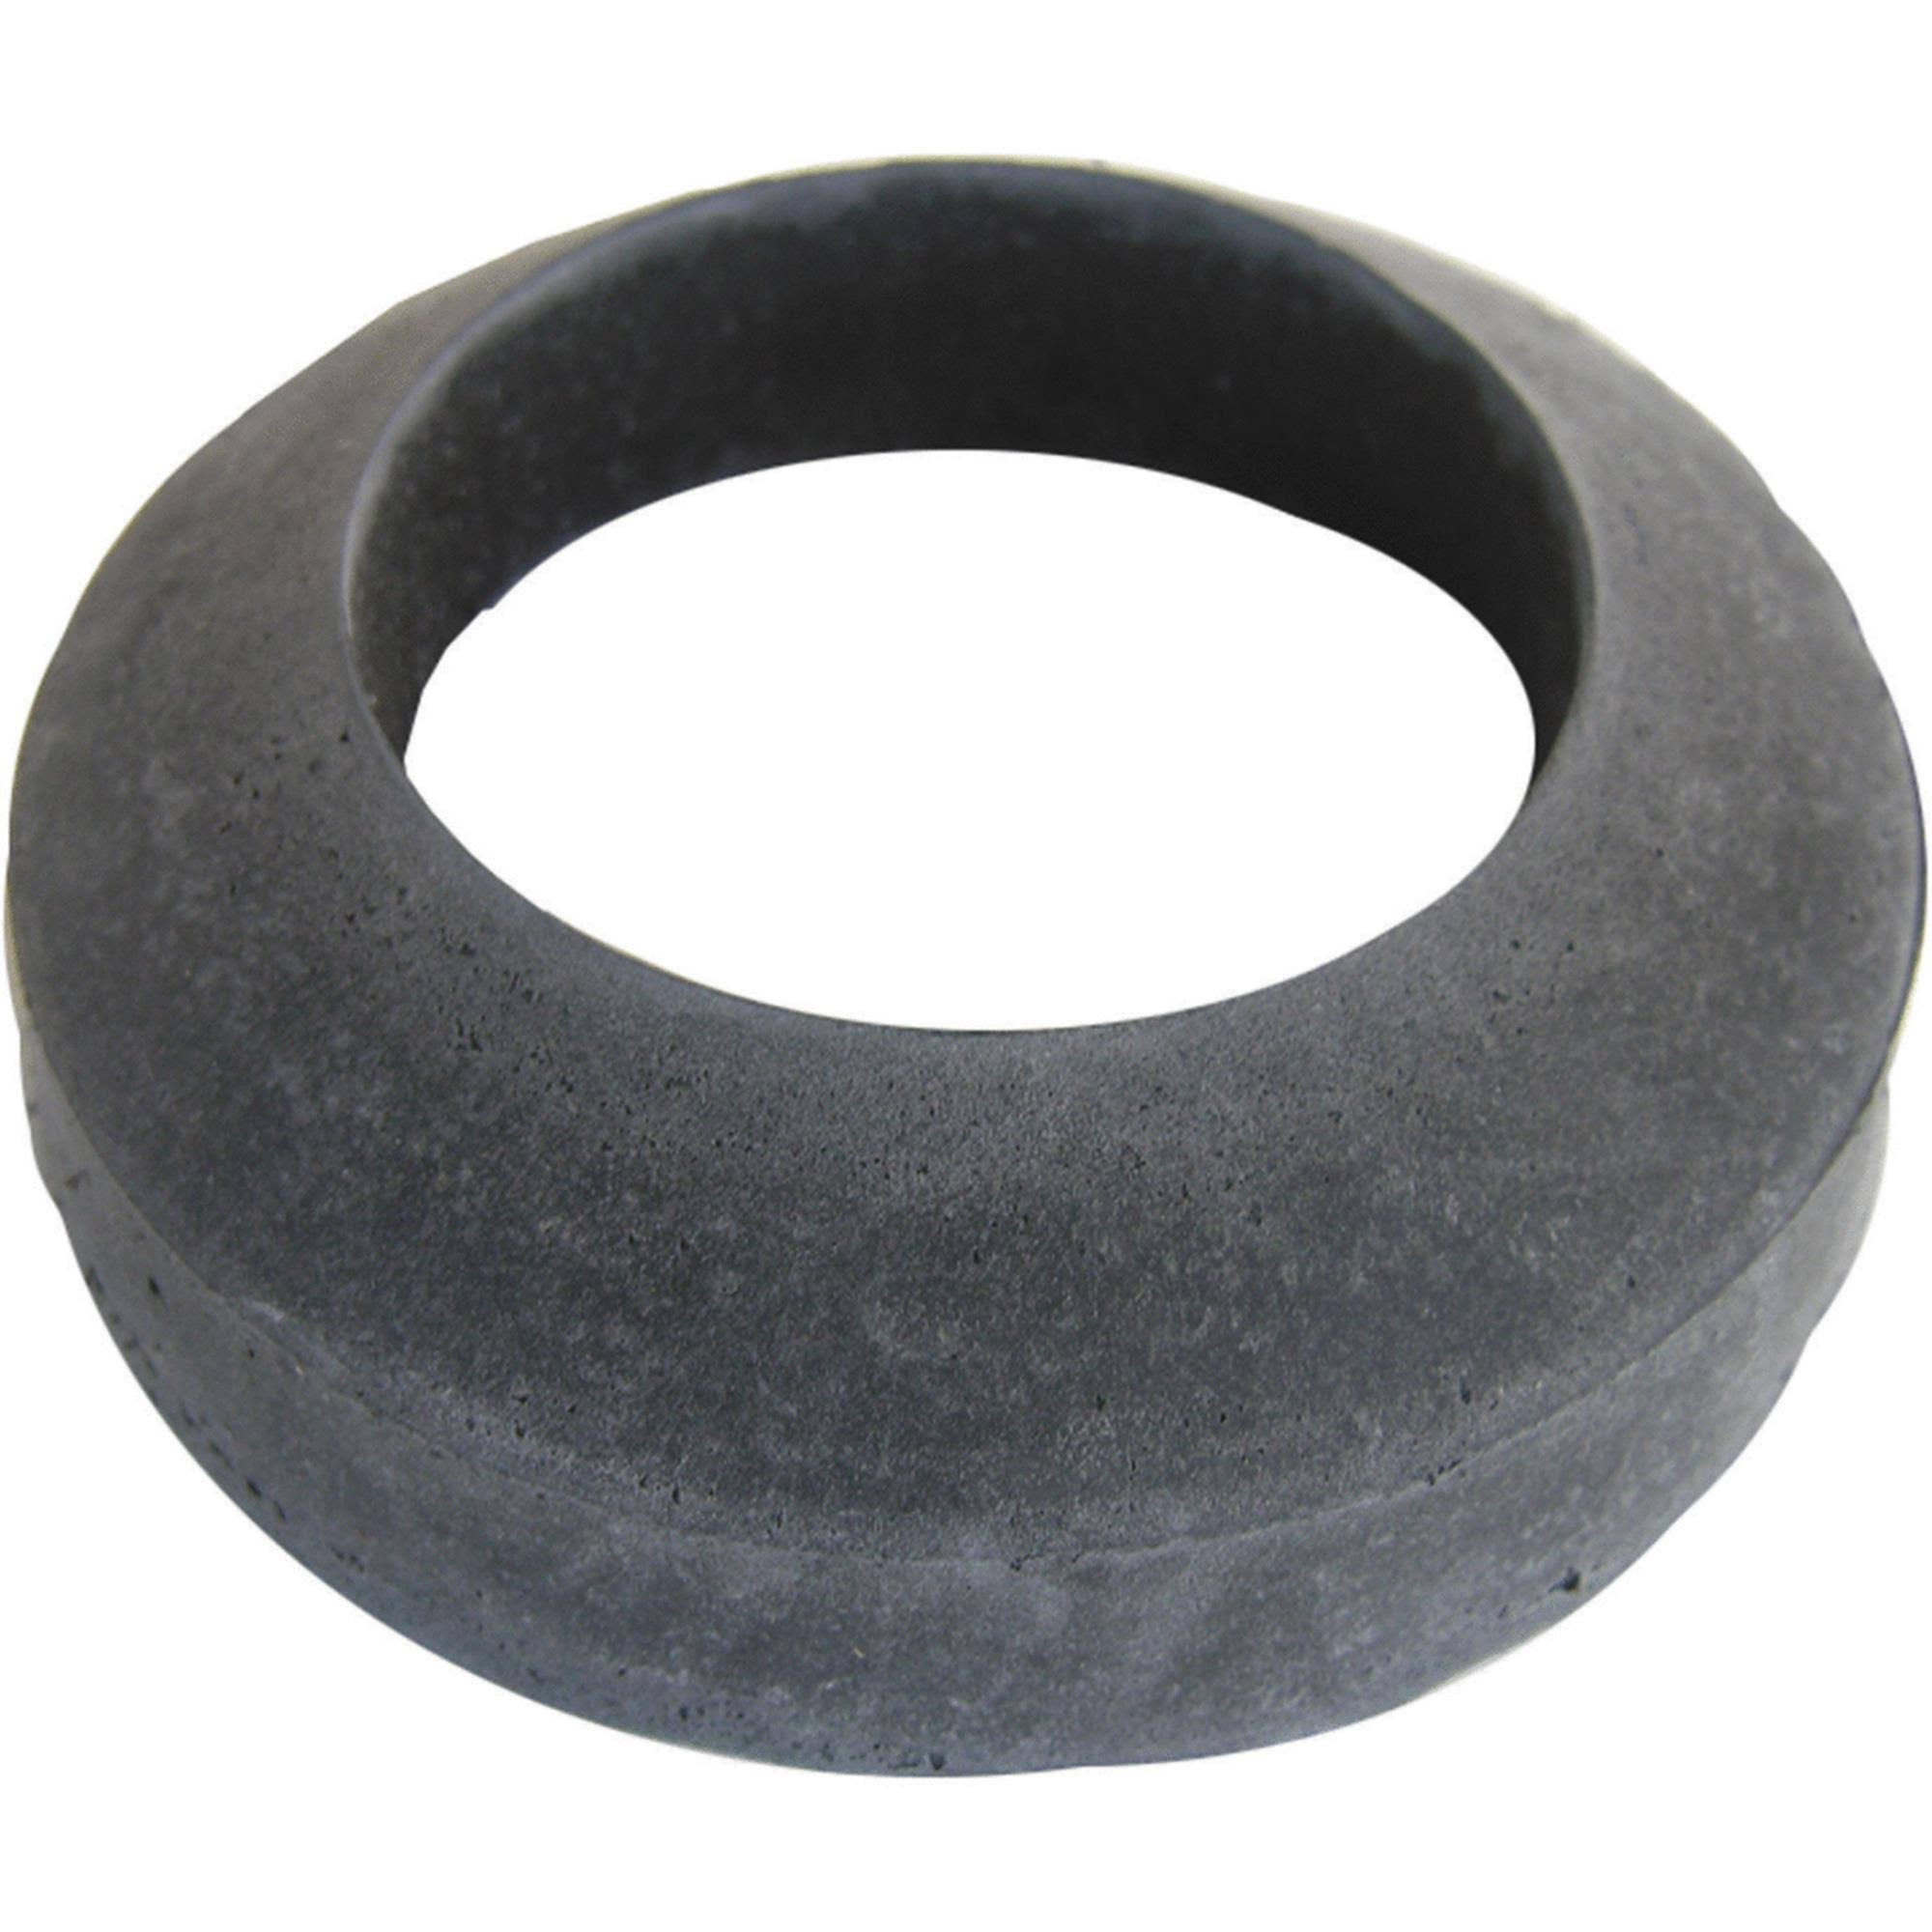 Lasco Rubber Toilet Tank To Bowl Recessed Sponge Gasket